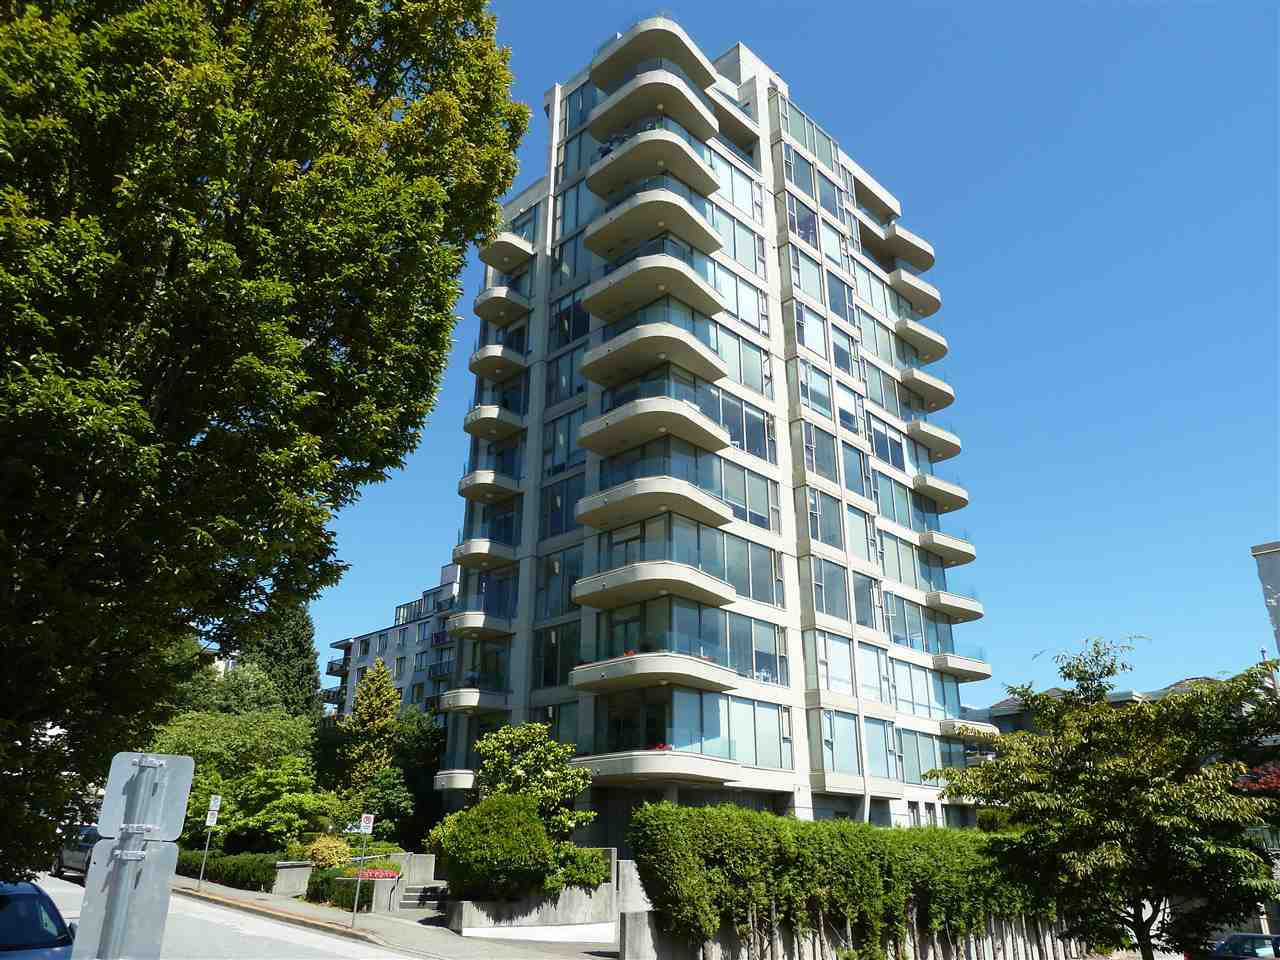 """Main Photo: 402 570 18TH Street in West Vancouver: Ambleside Condo for sale in """"WENTWORTH"""" : MLS®# R2194488"""